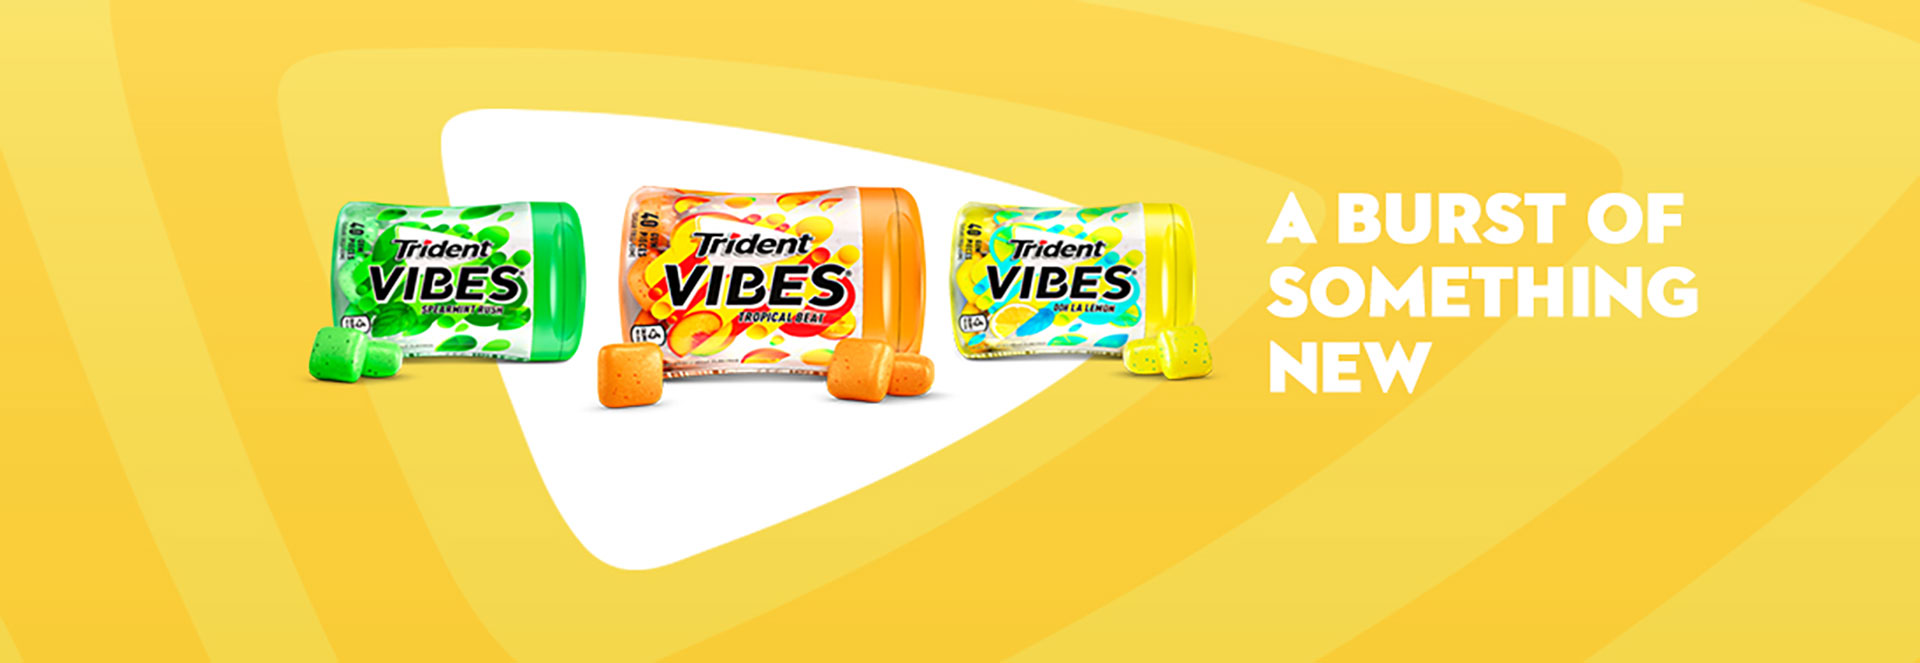 Trident Gum Gets a New 'Vibe'